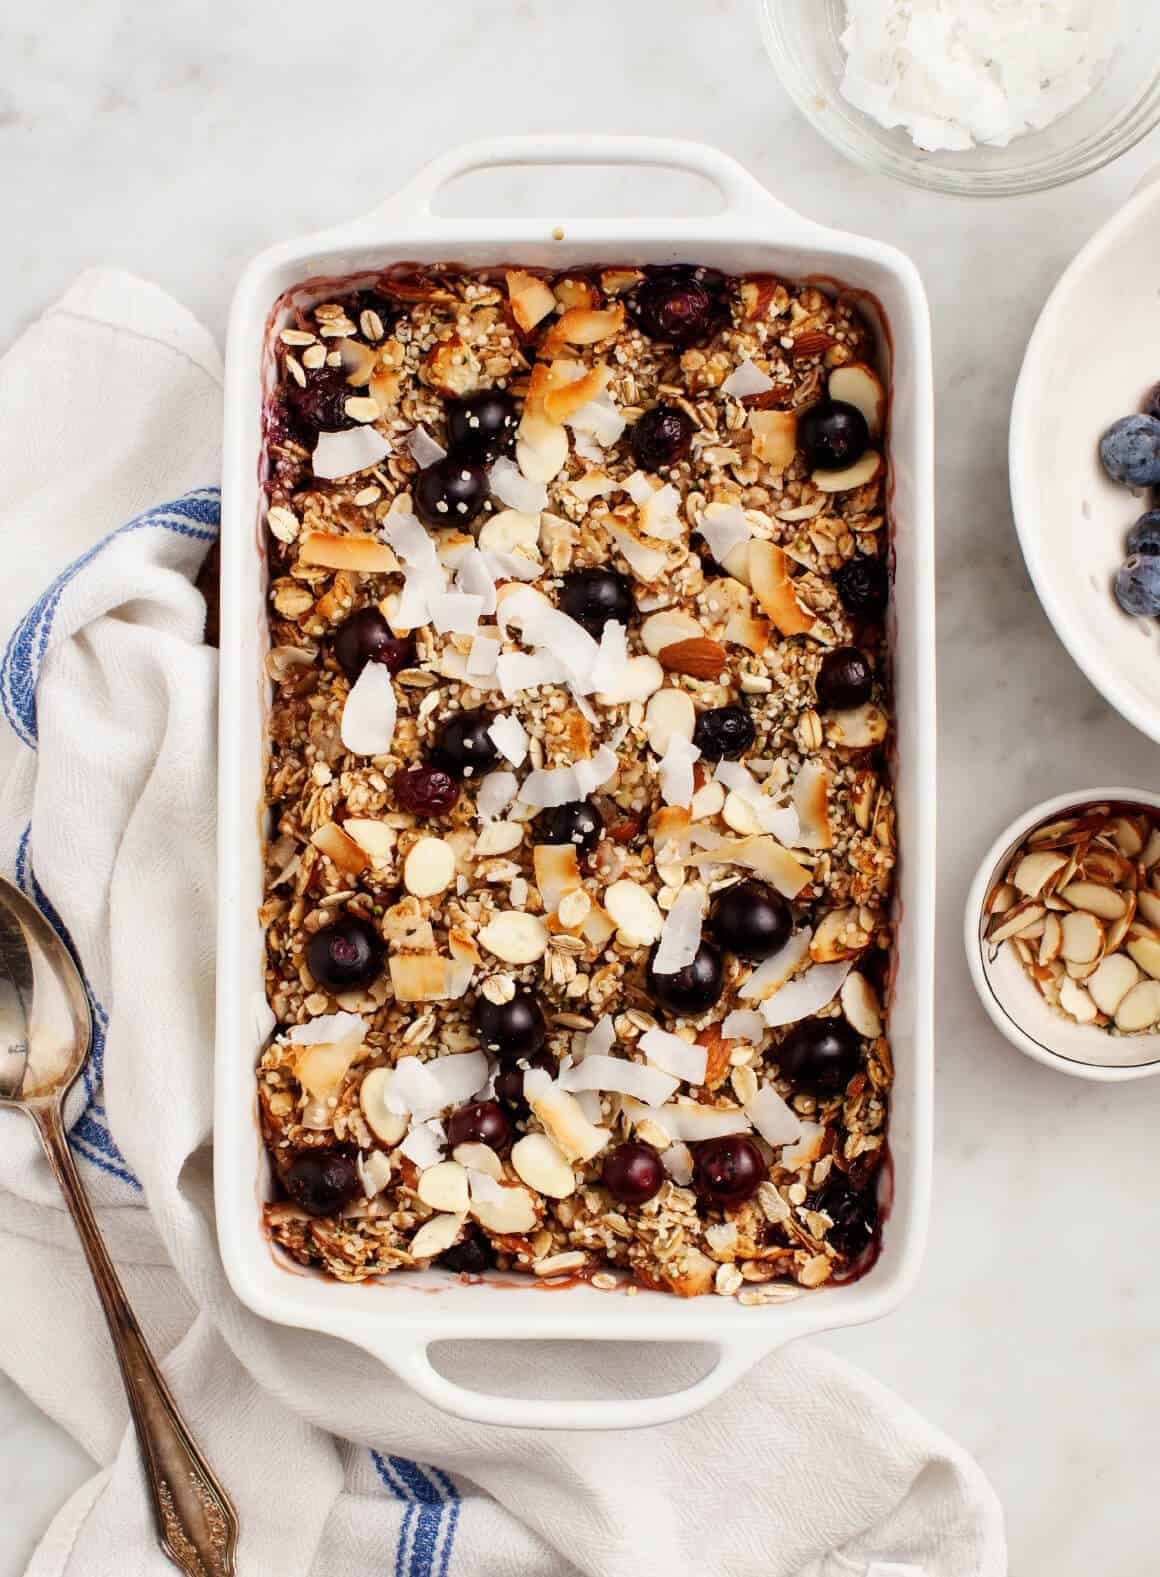 Blueberry Coconut Baked Oatmeal